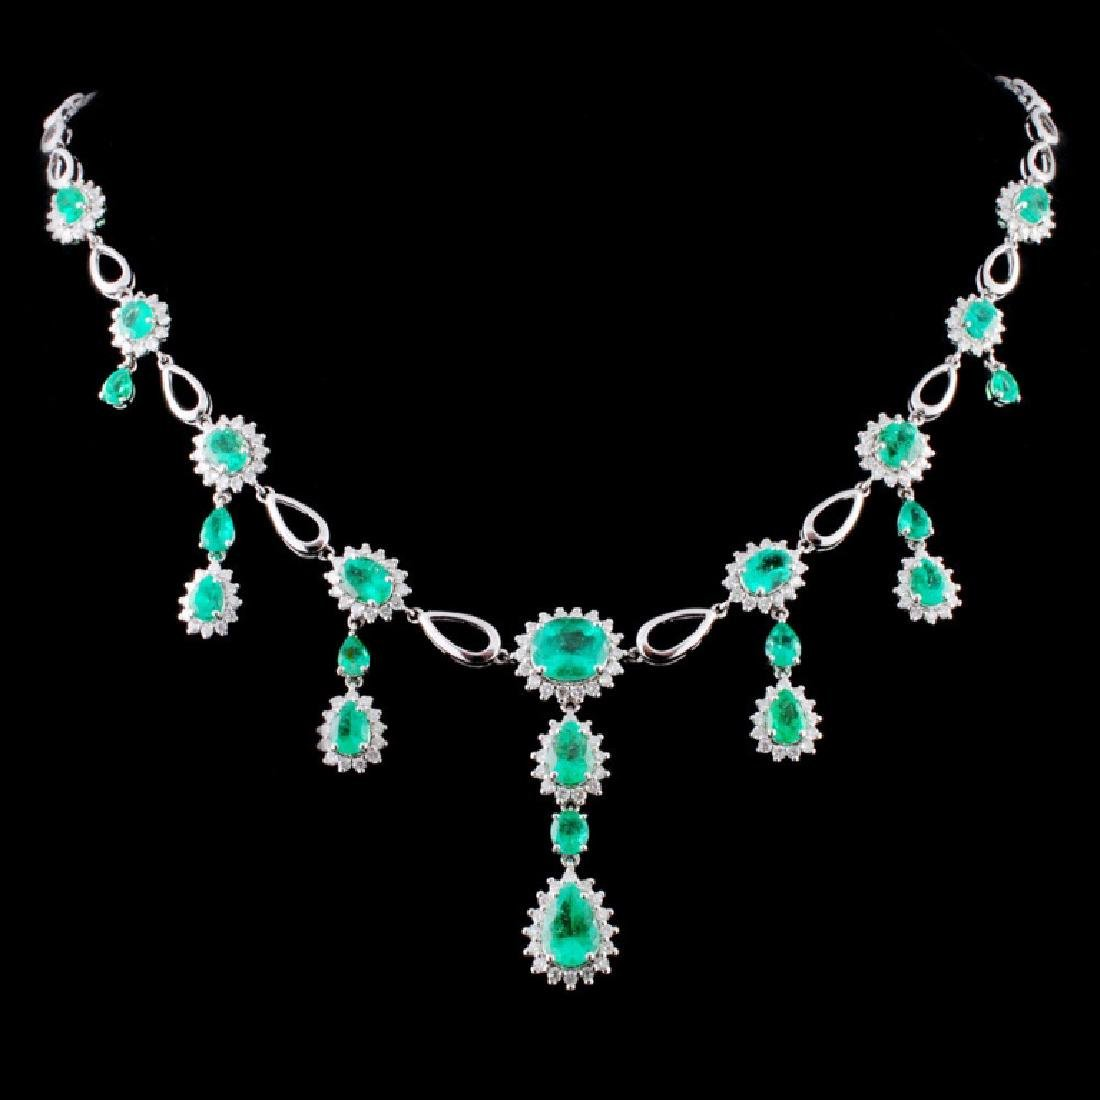 18K Gold 8.58ct Emerald & 2.43ctw Diamond Necklace